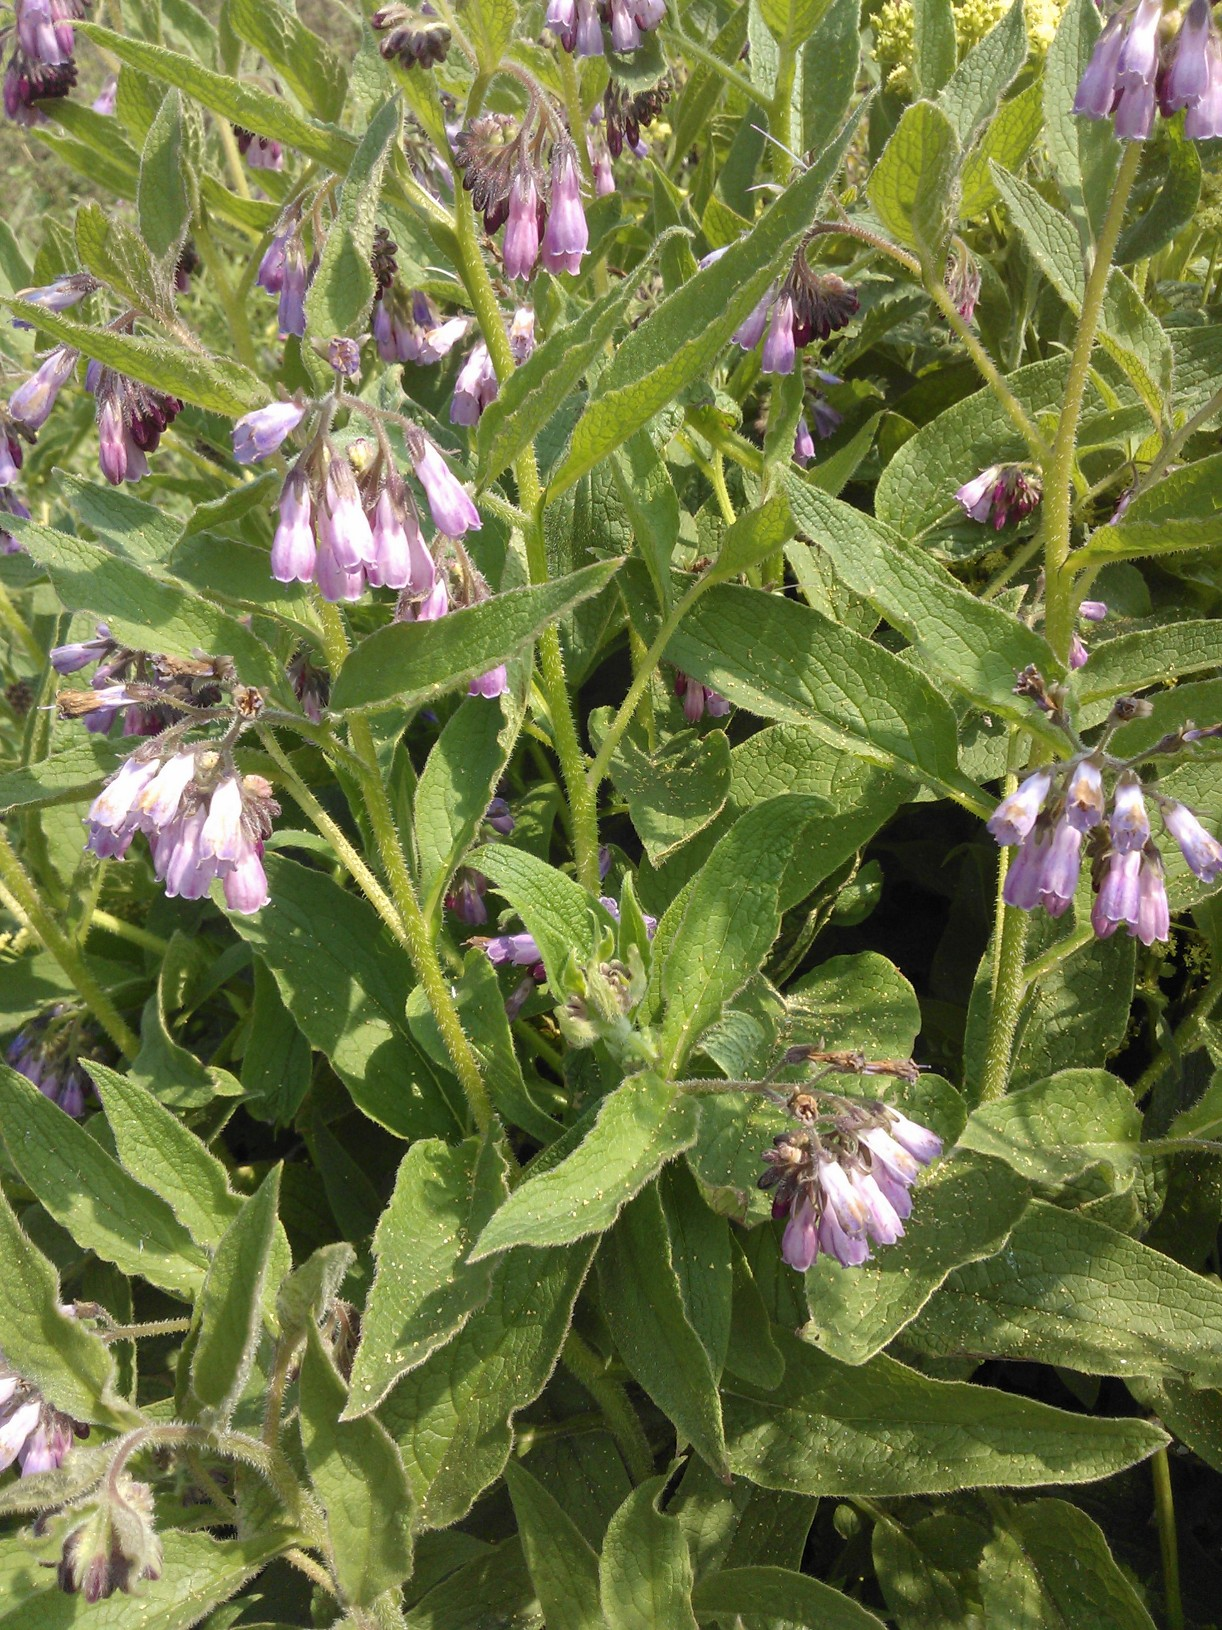 Comfrey, to eat or not to eat?